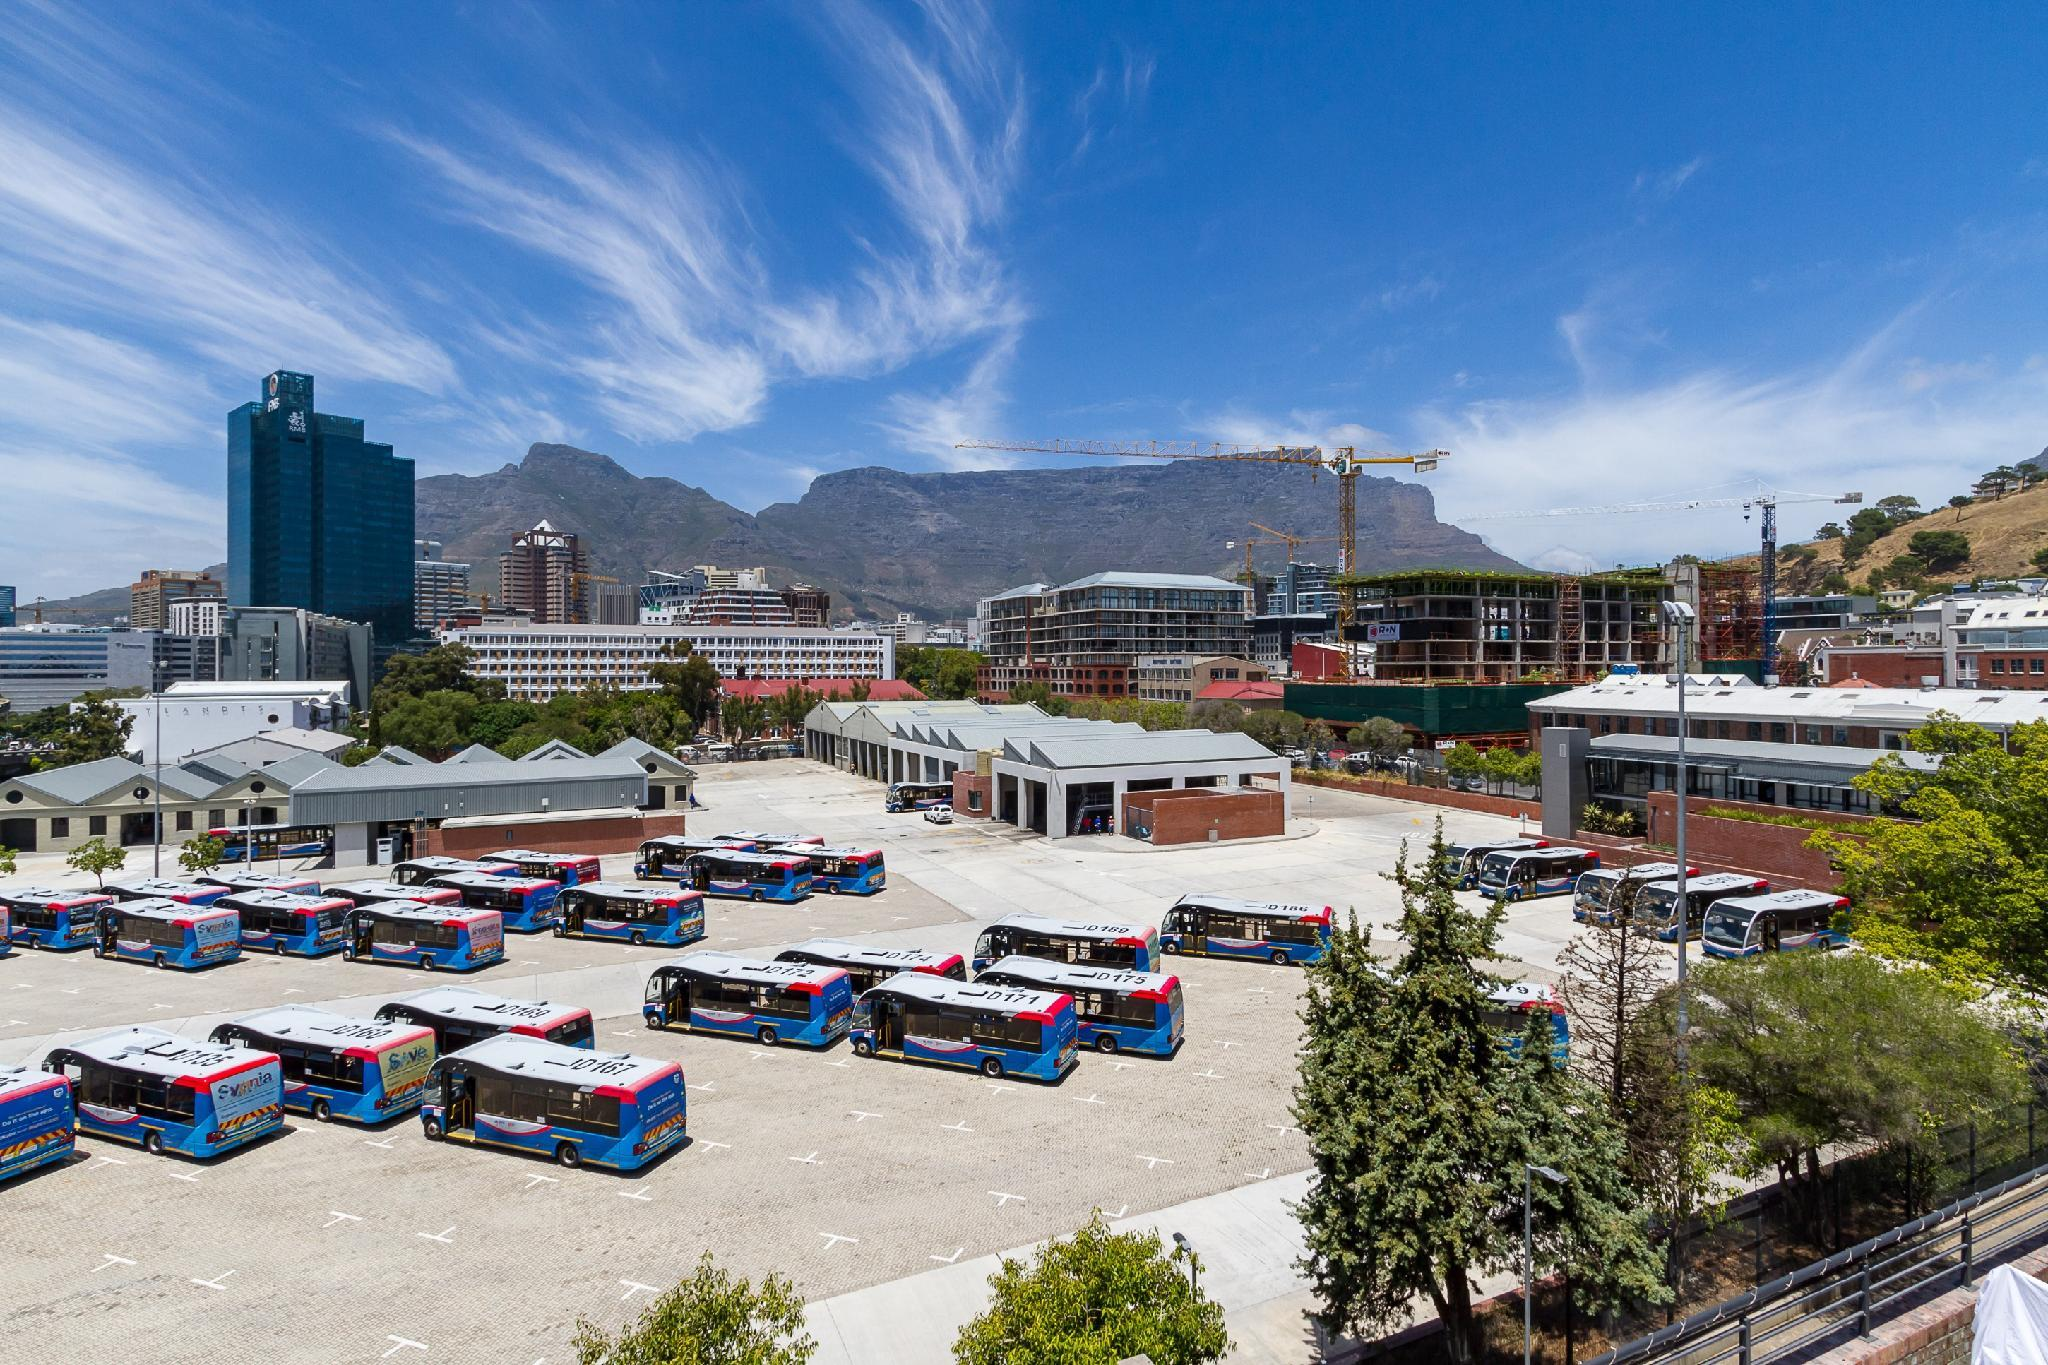 Unobstructed view of Table Mountain in trendy area